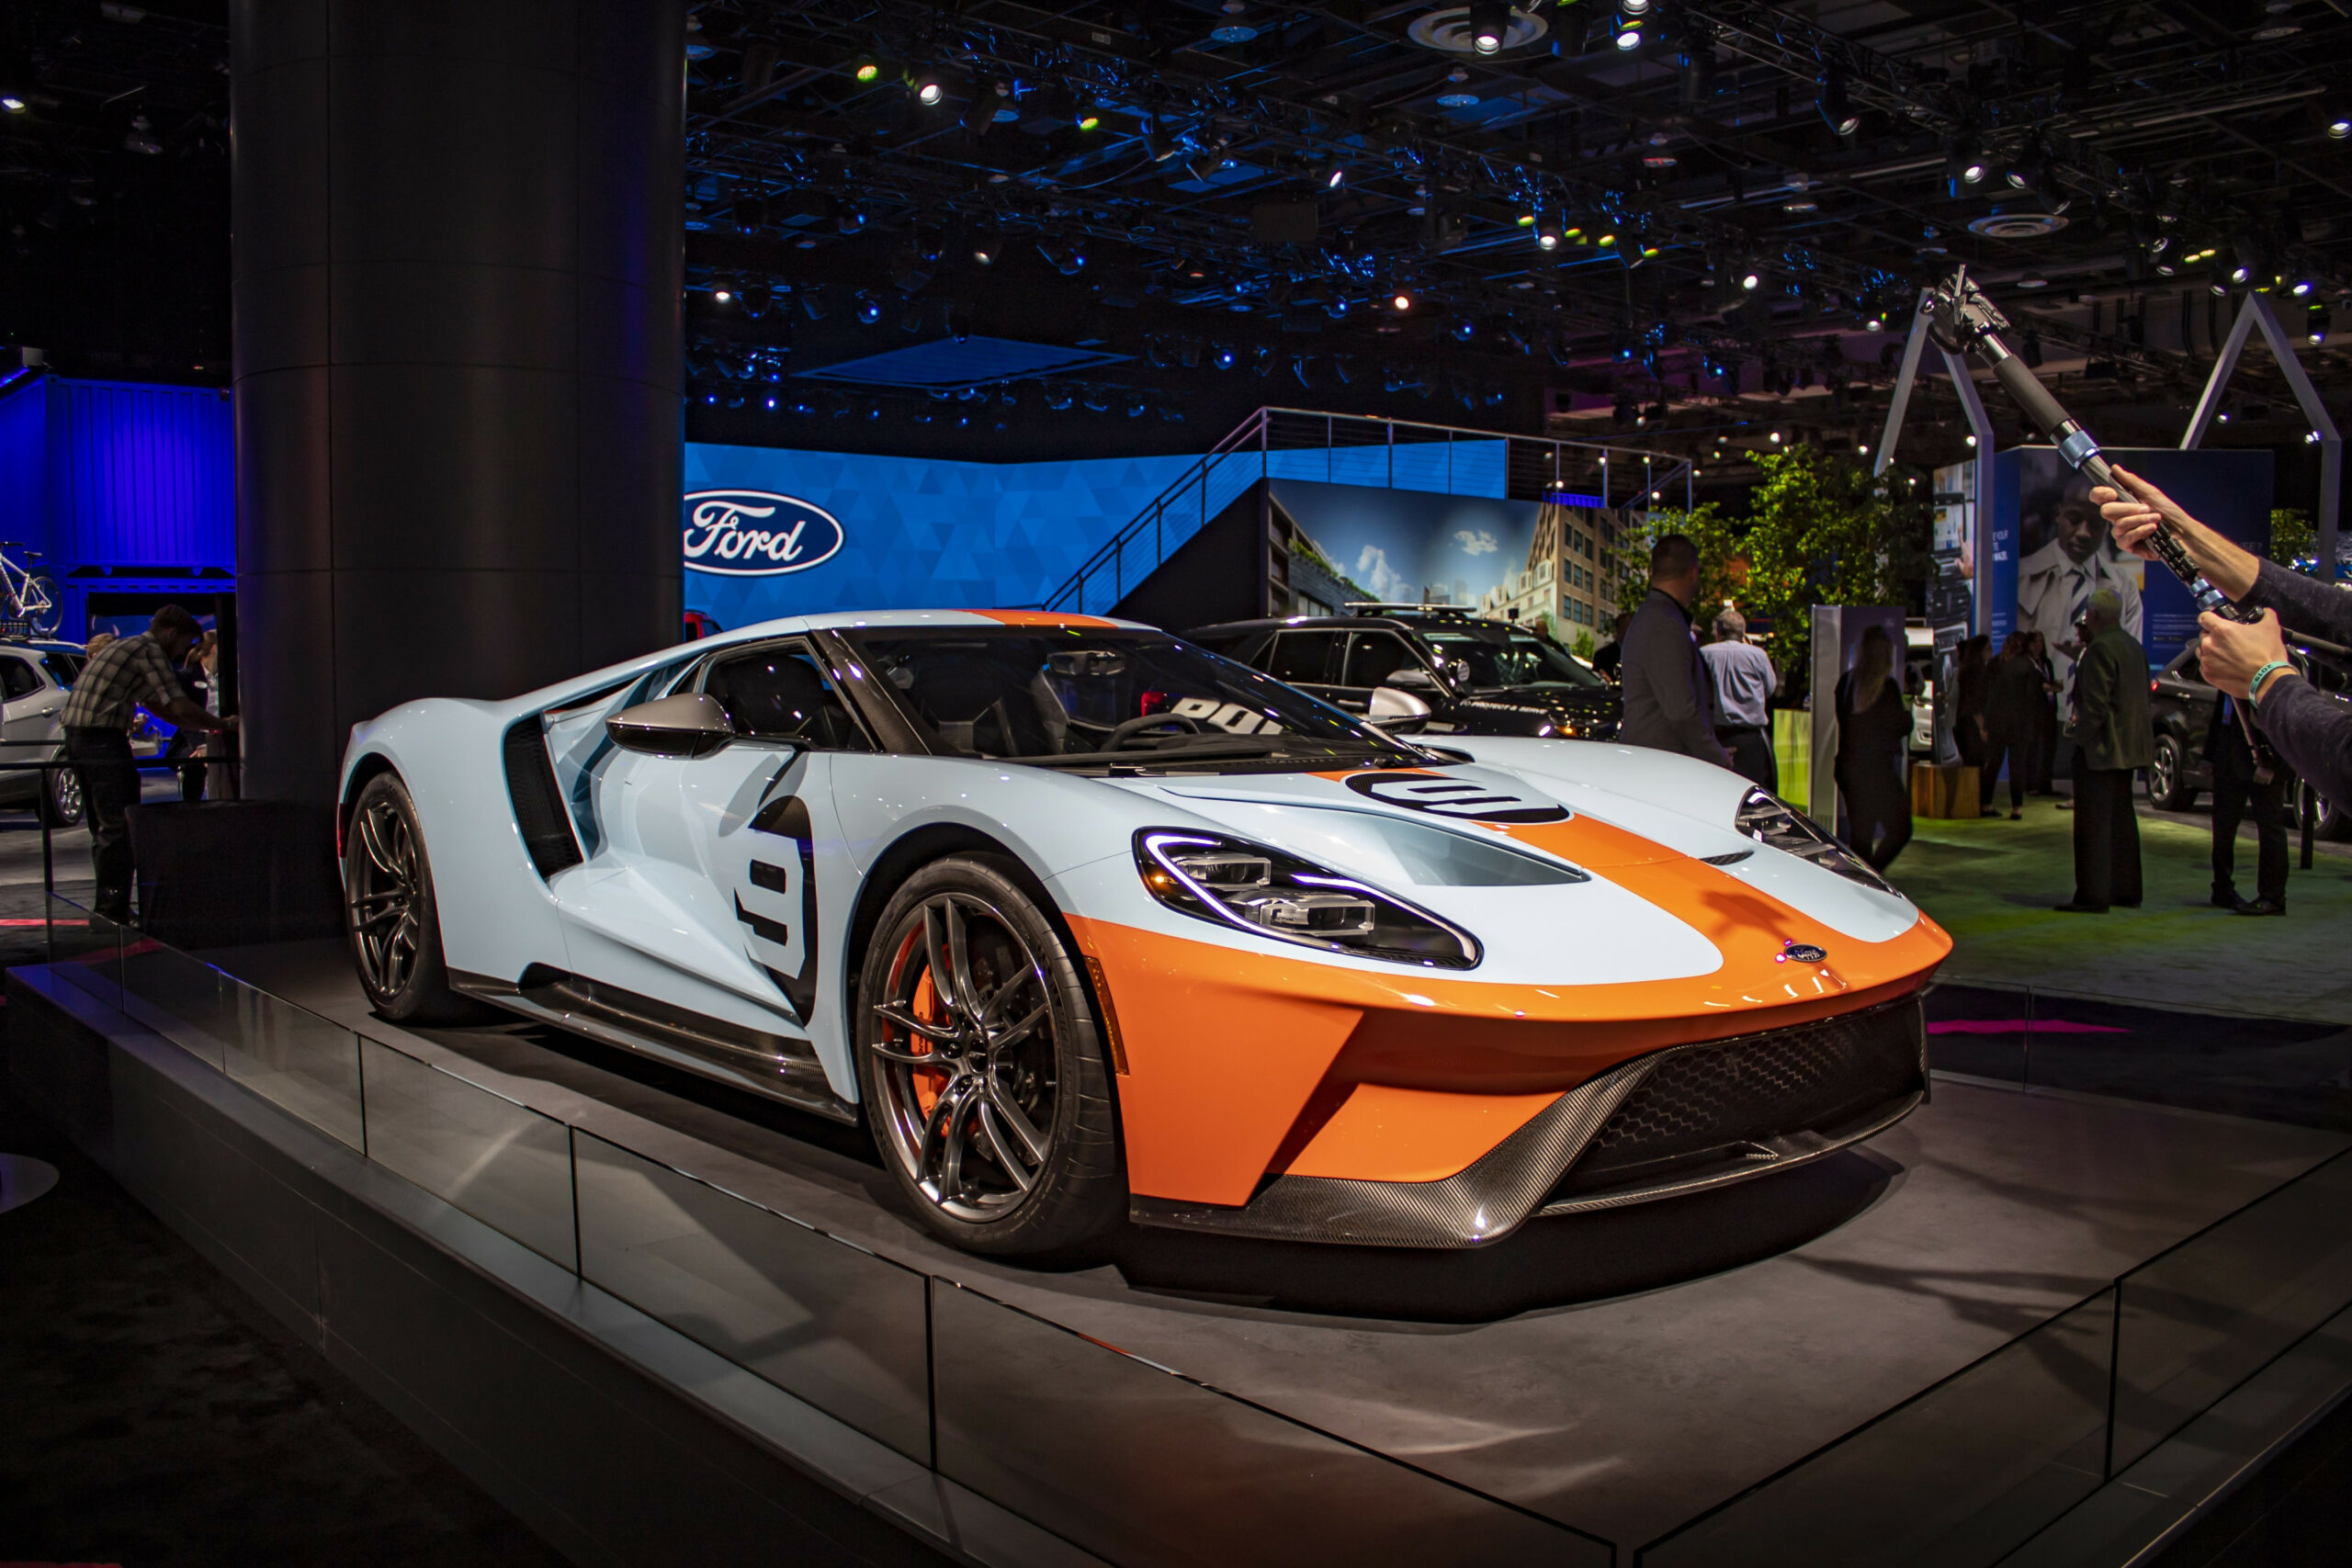 9 ford gt quarter mile time Exterior 9*9 - 9 ford gt ...